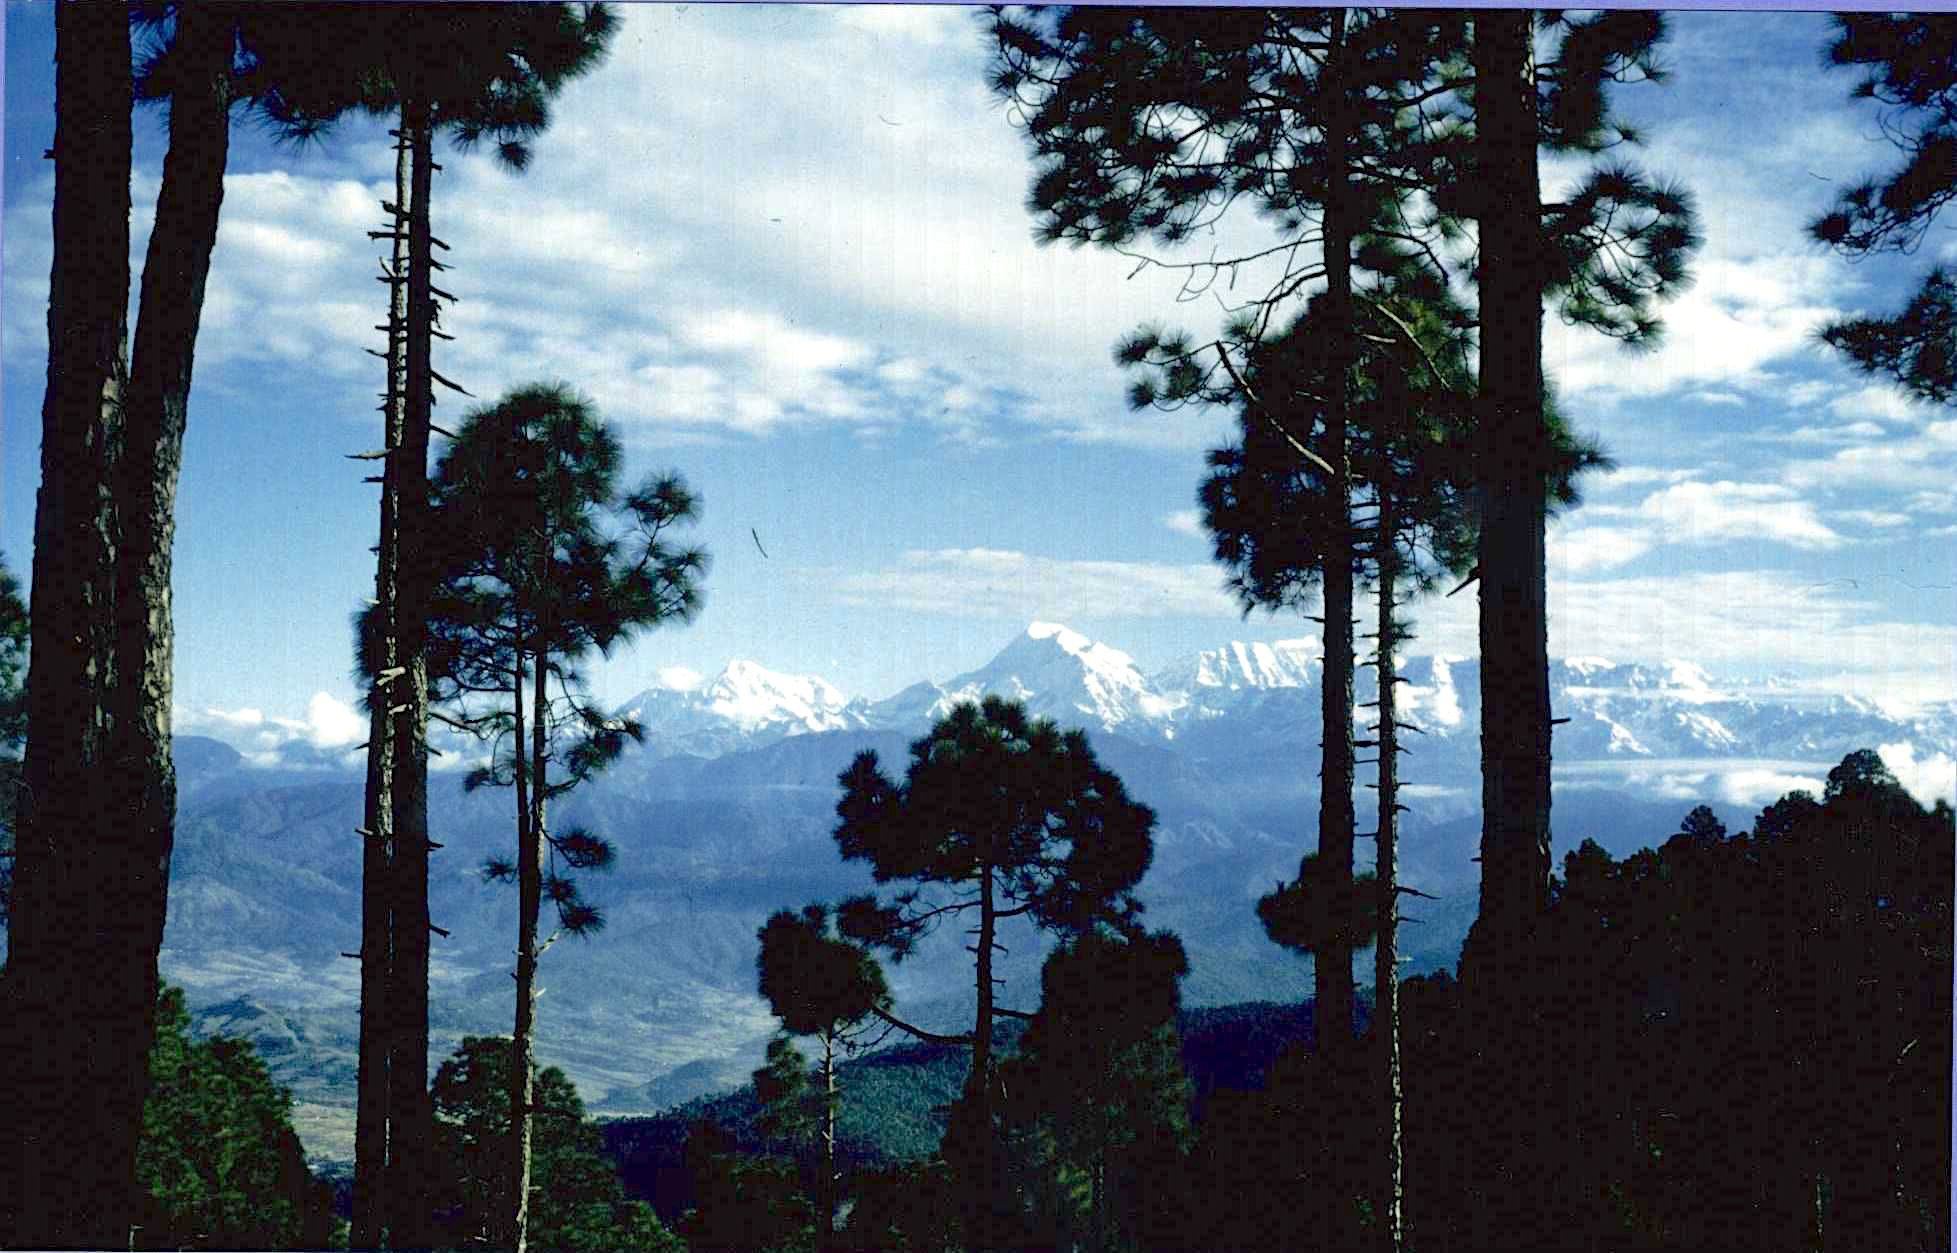 The Himalayas seen from the woods above the Ashram